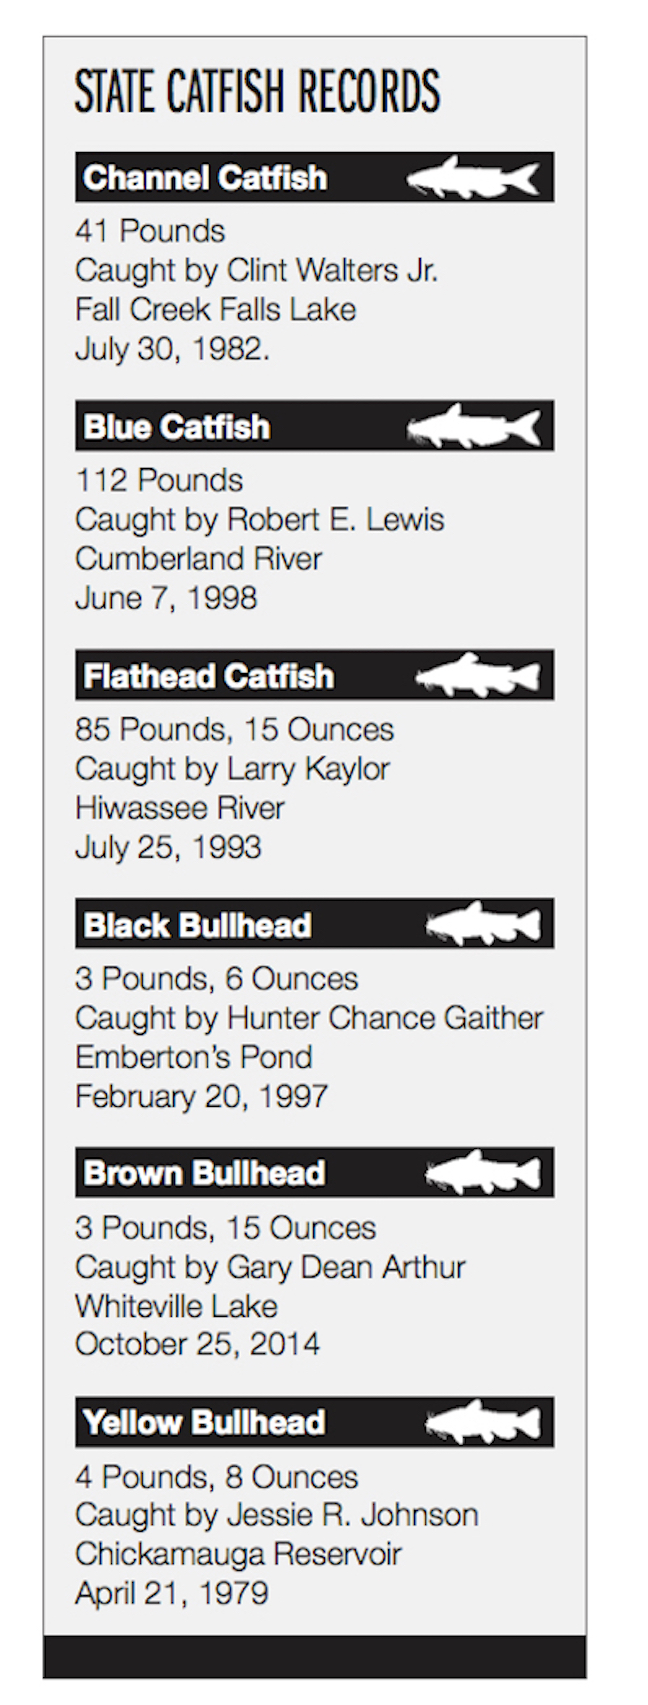 Summer Hot Spots for Tennessee Catfish